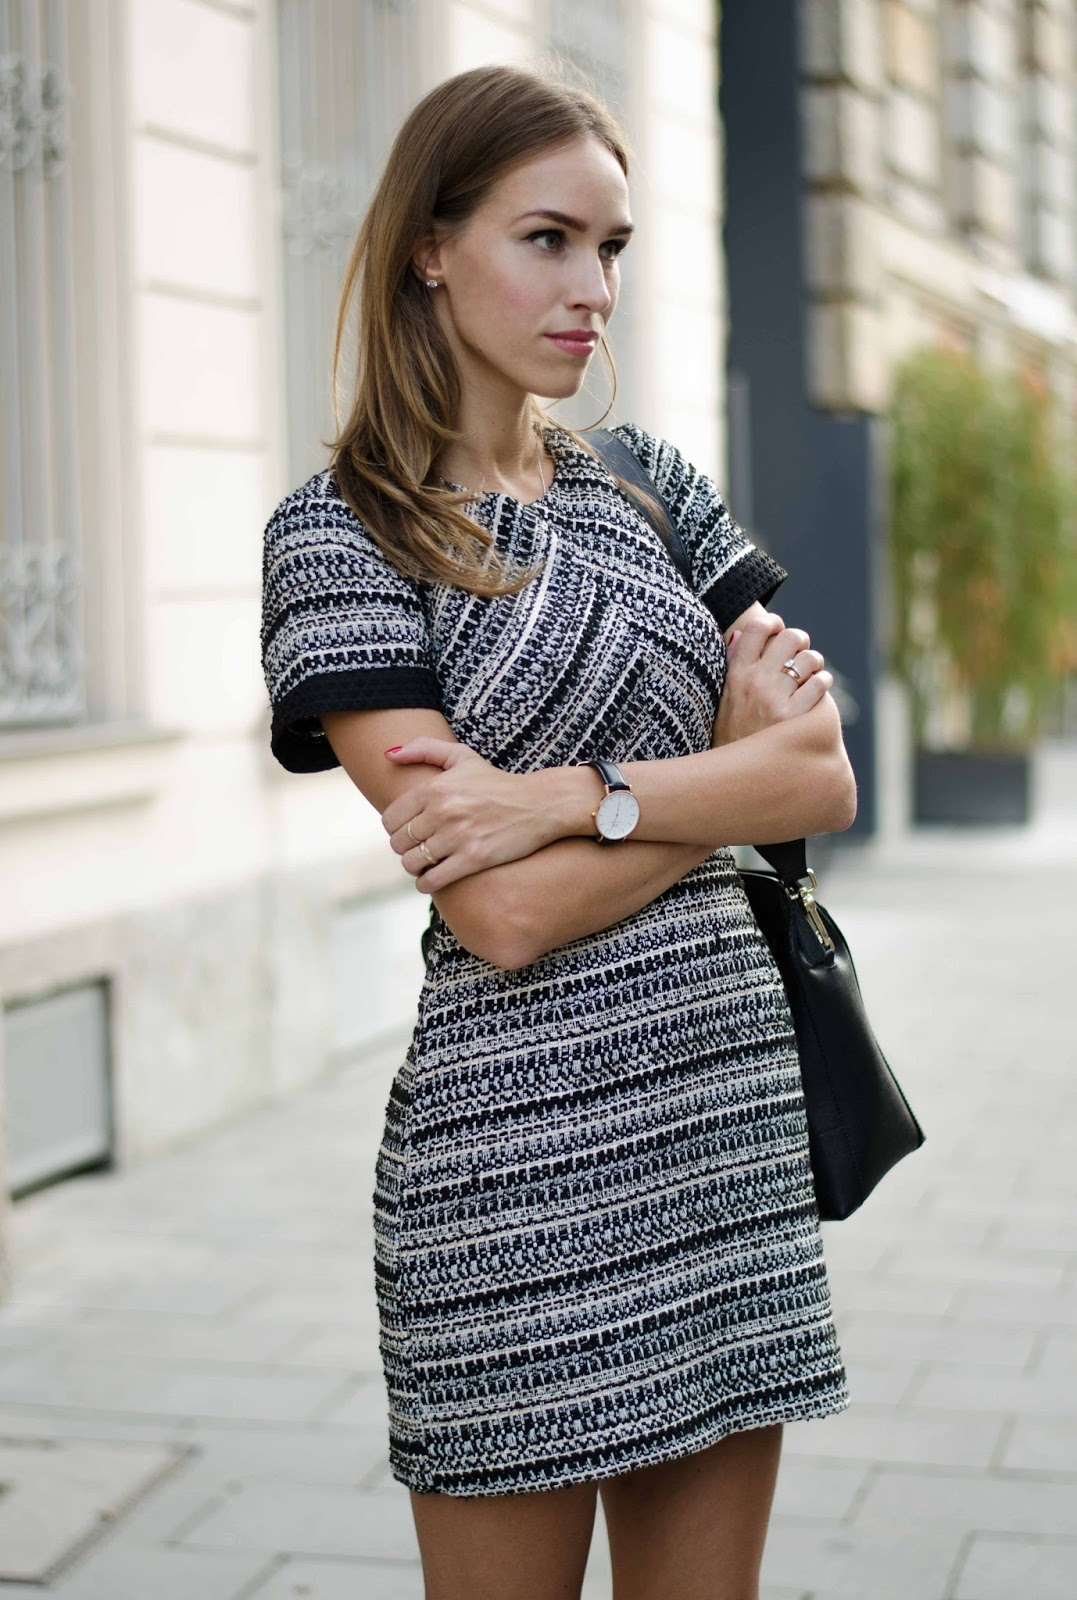 kristjaana mere hm mini dress daniel wellington watch fall outfit munich street style